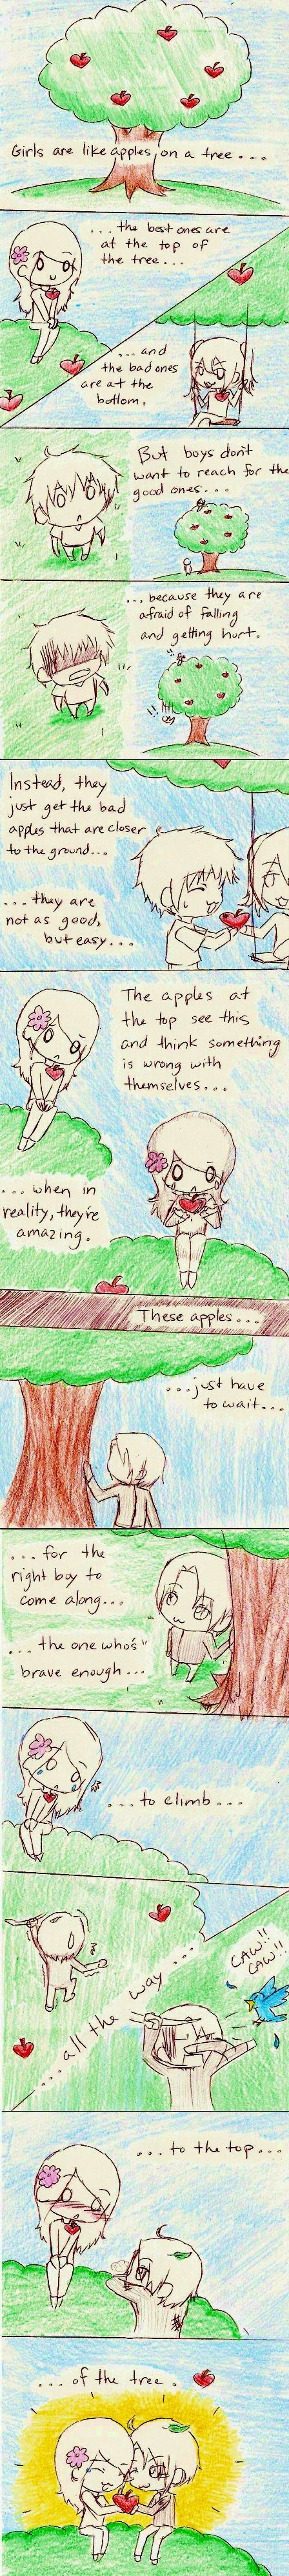 GIRLS are like APPLES by chococat830 on deviantART